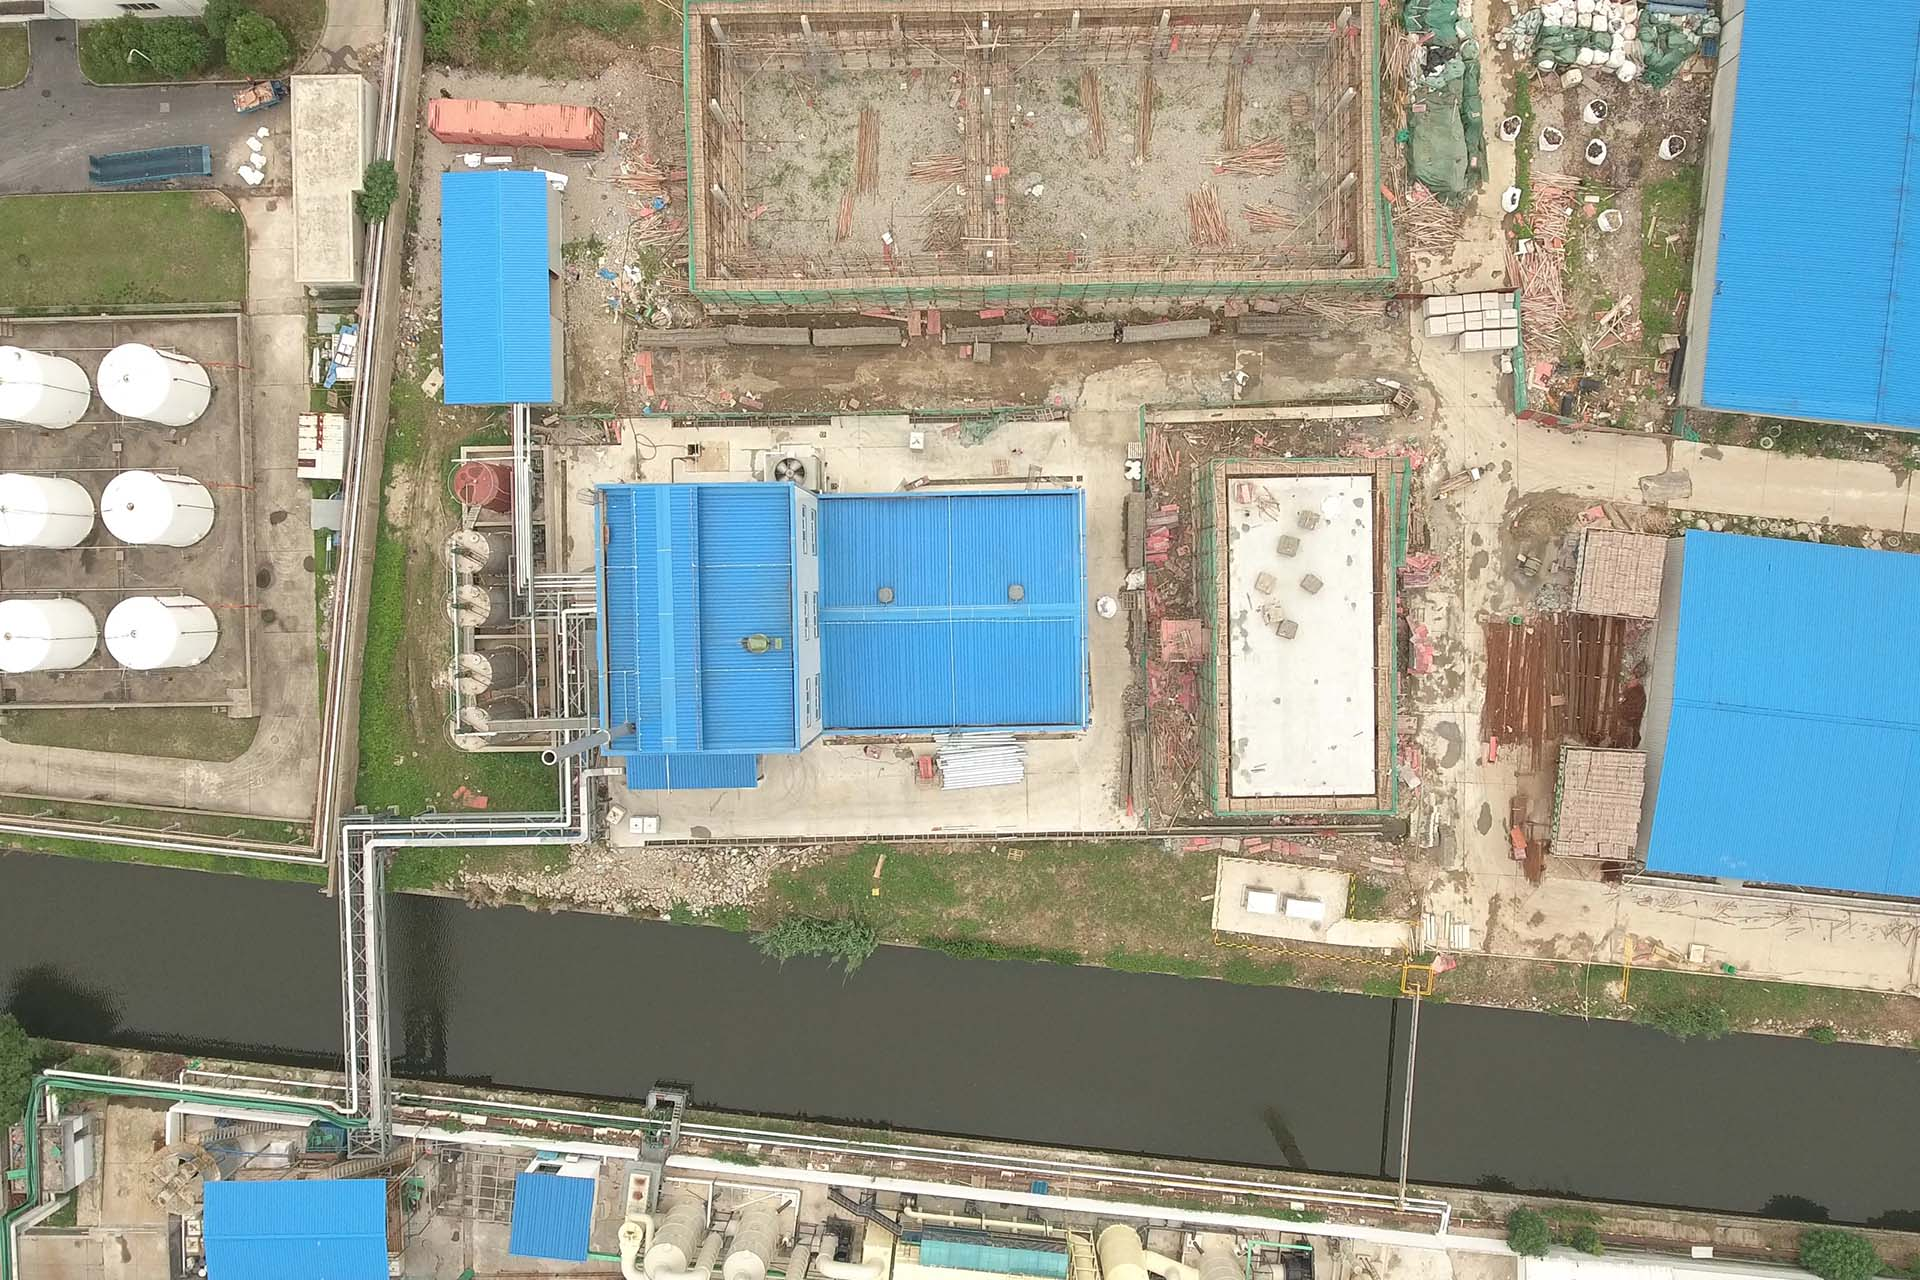 Suzhou Tianma Specialty Chemicals Co plant ecologia informatica aerial view